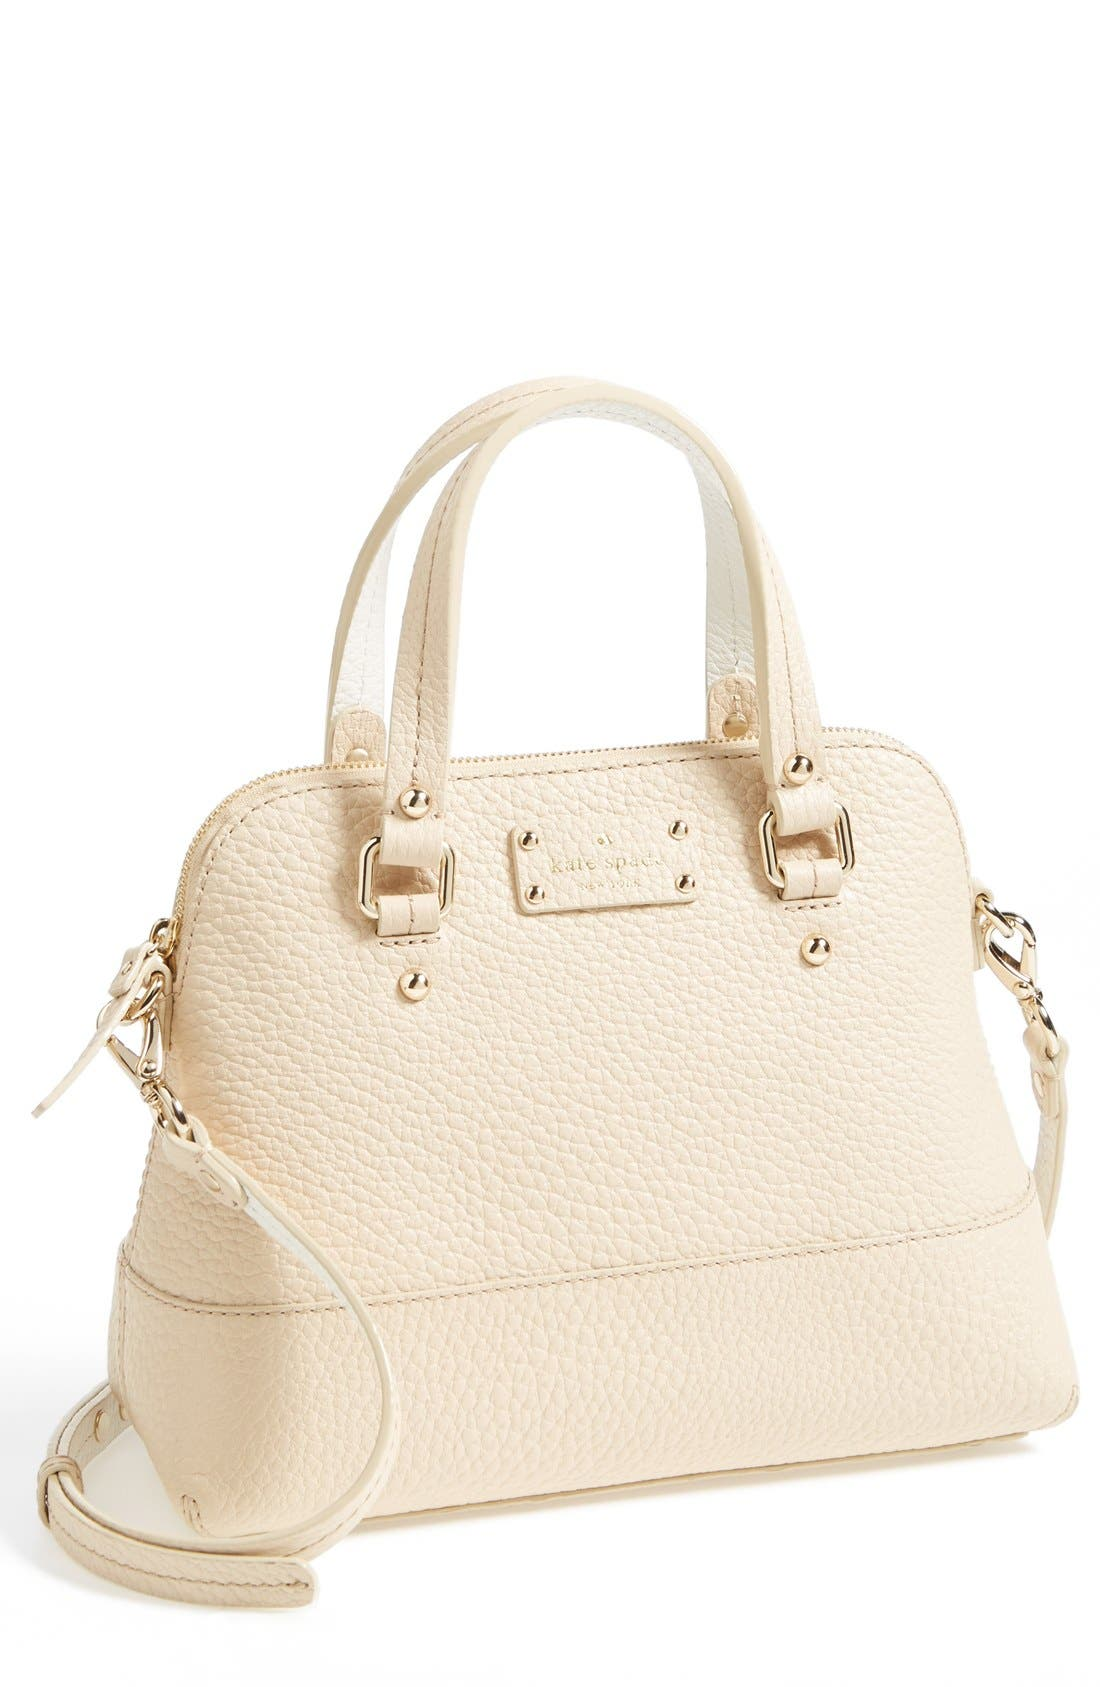 Alternate Image 1 Selected - kate spade new york 'small grove court maise' leather satchel